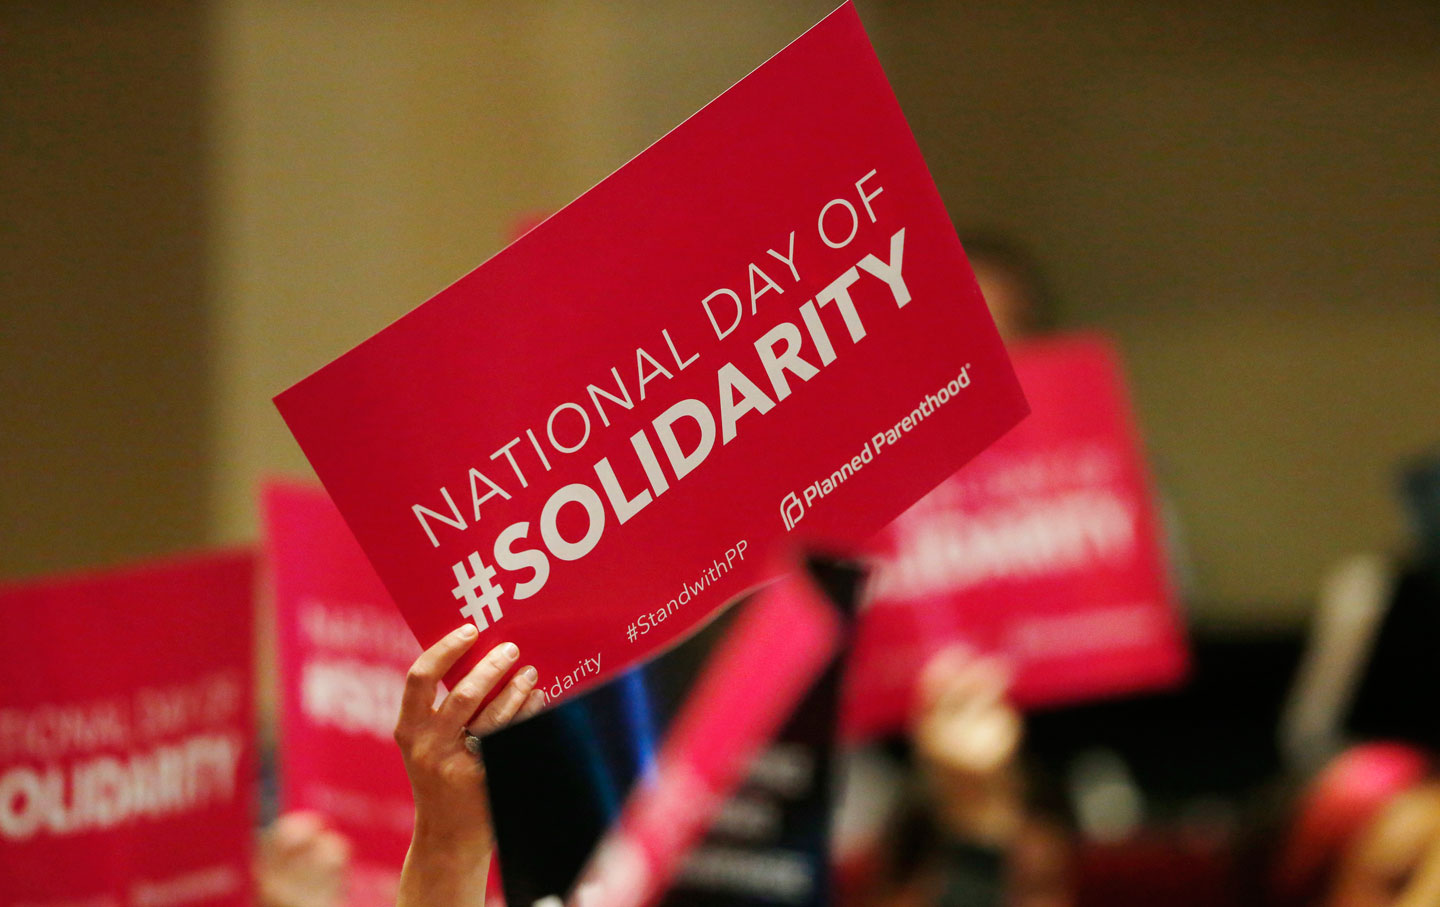 planned_parenthood_solidarity_ap_img